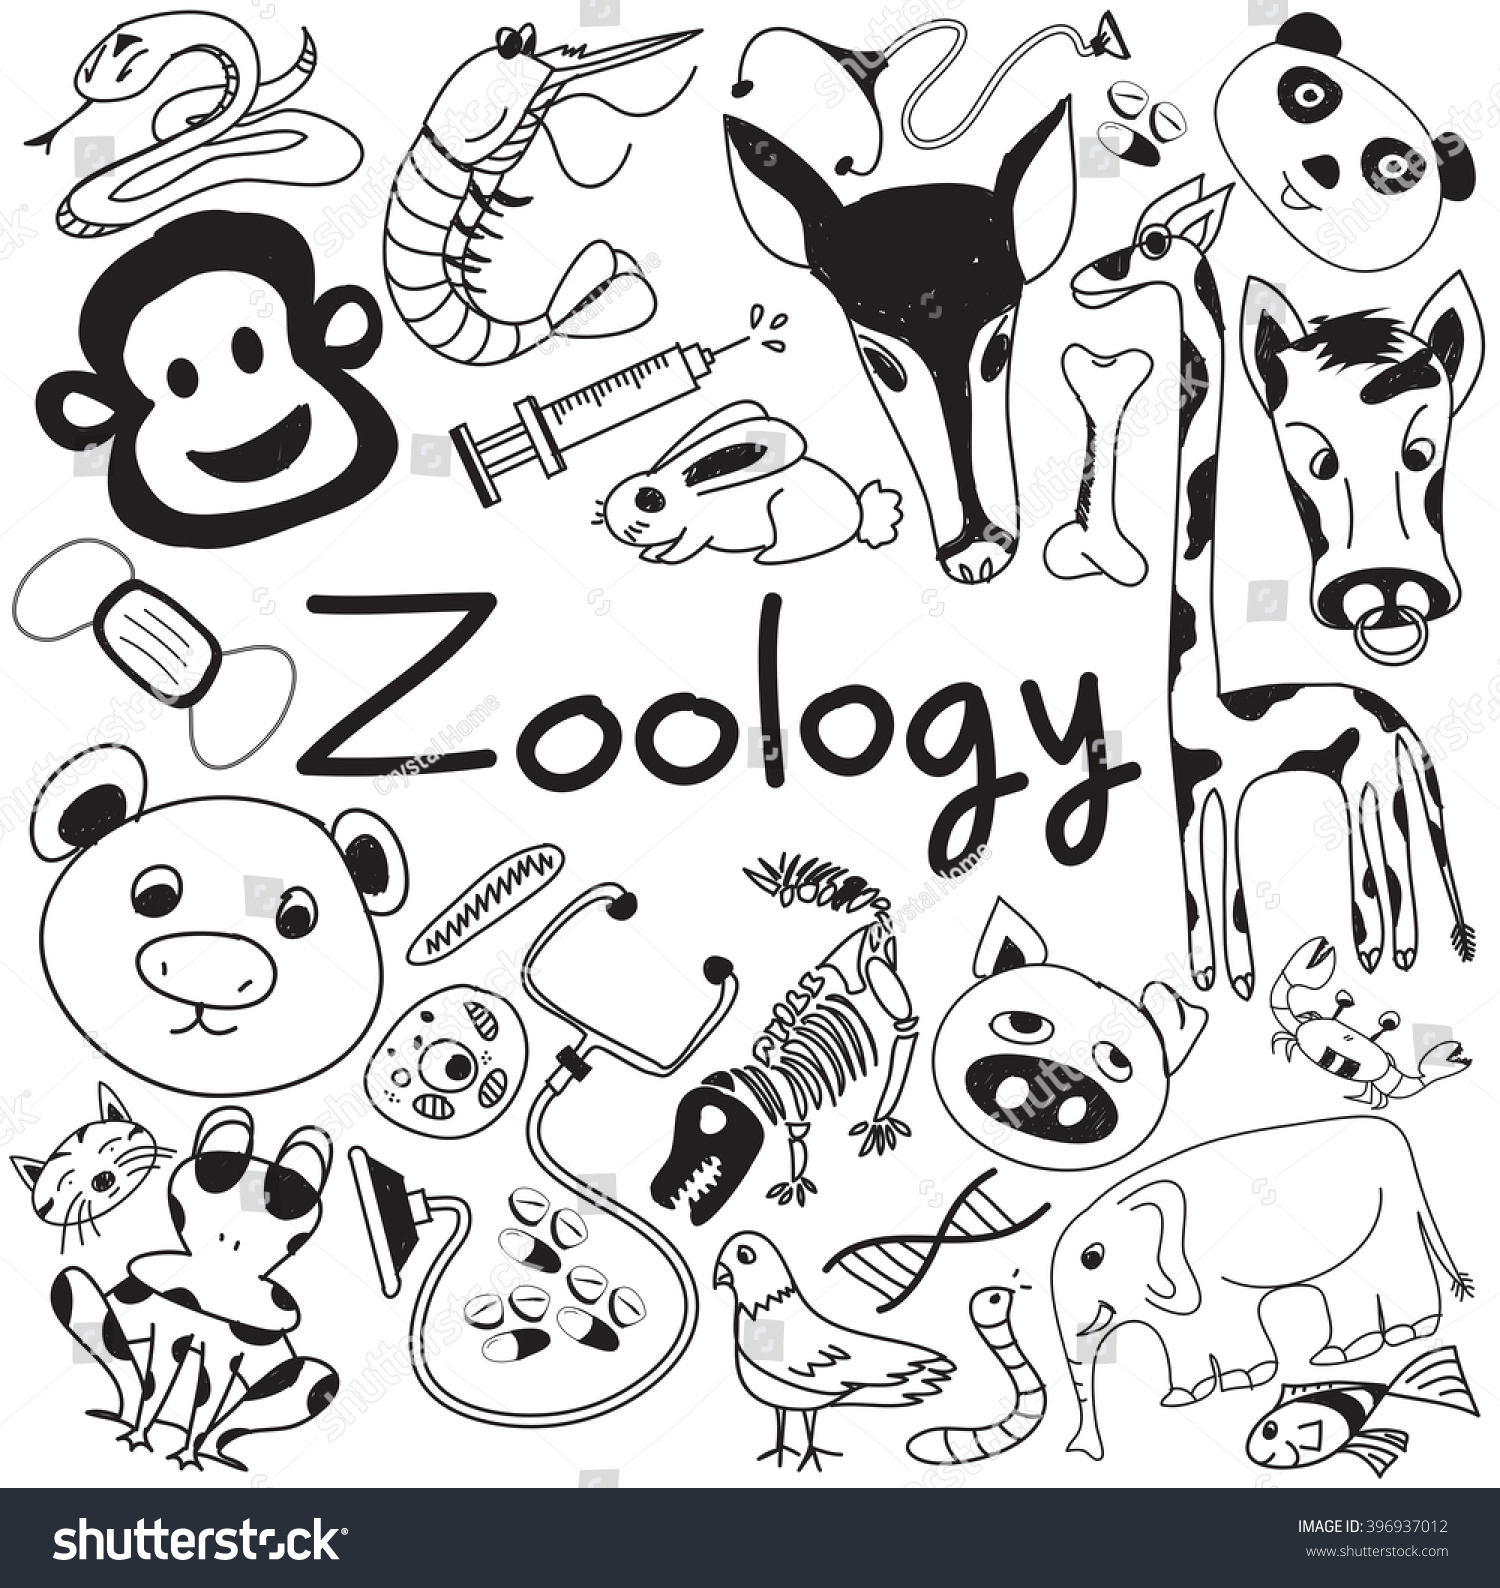 Zoology Biology Doodle Handwriting Icons Animal Stock Vector ...